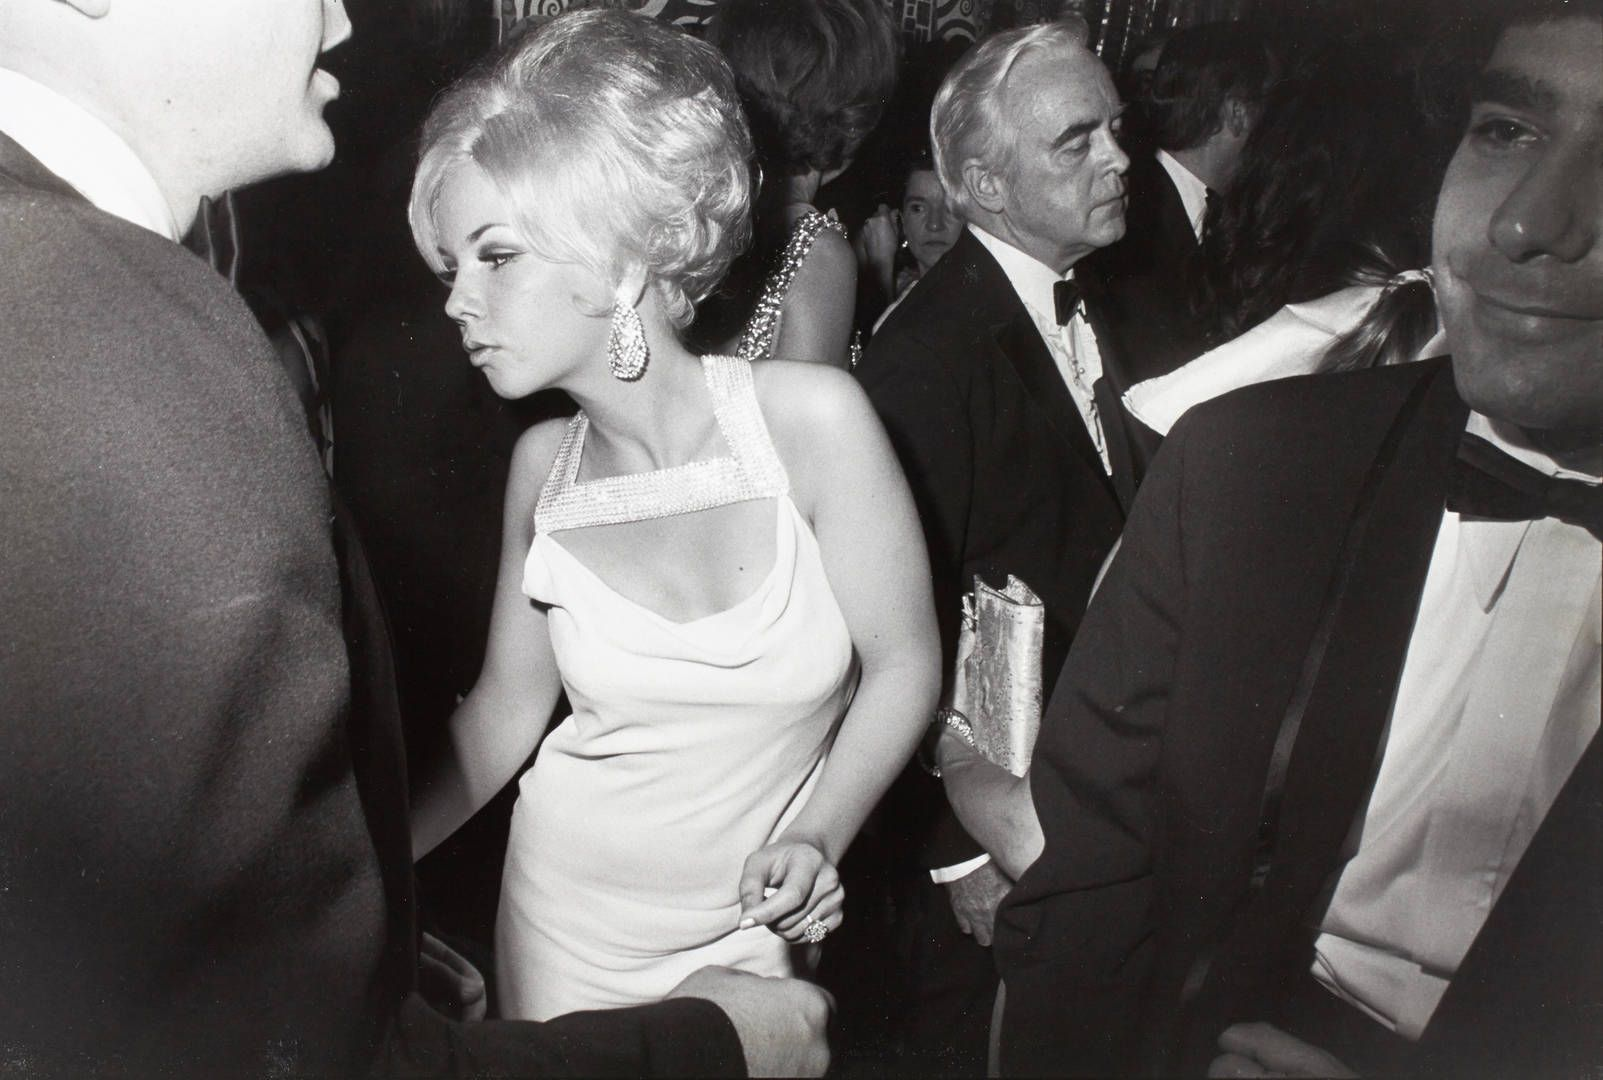 Garry Winogrand, courtesy of Lola Garrido Collection,  Jubilee Ball, Metropolitan Museum of Art New York, 1969